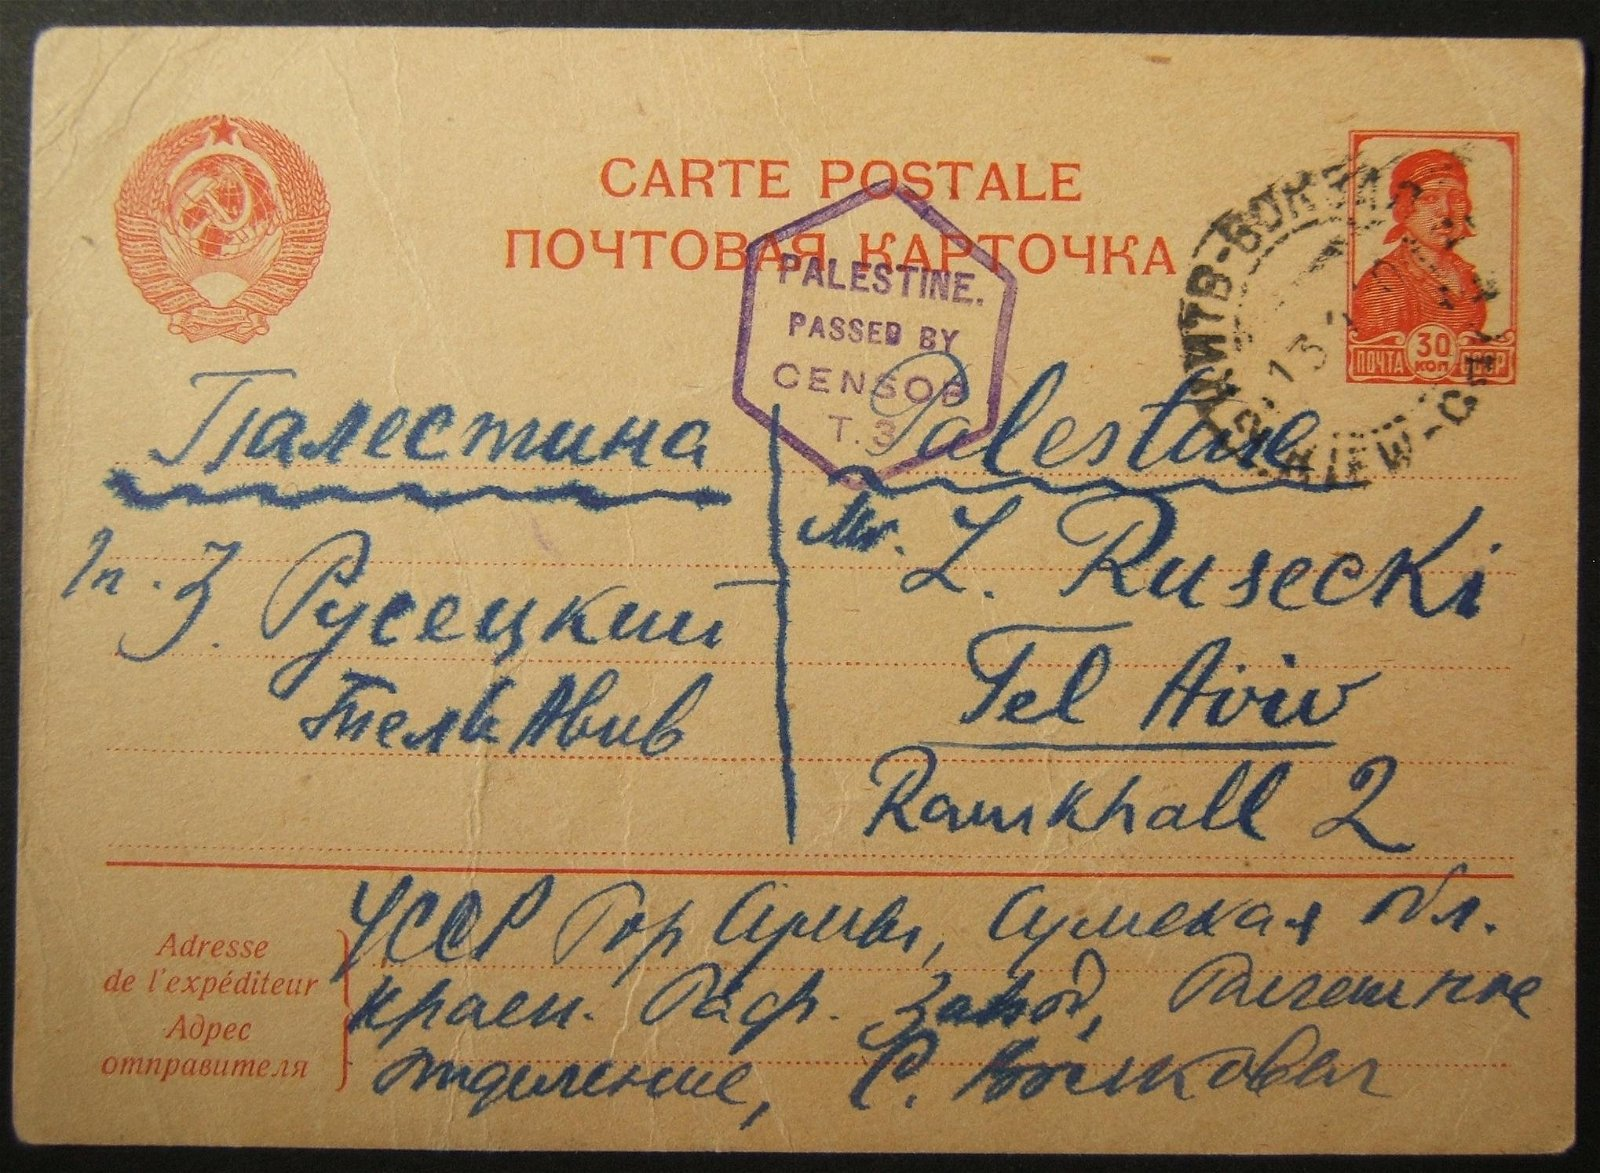 4/1940 WWII censored mail from KIEV to TEL AVIV